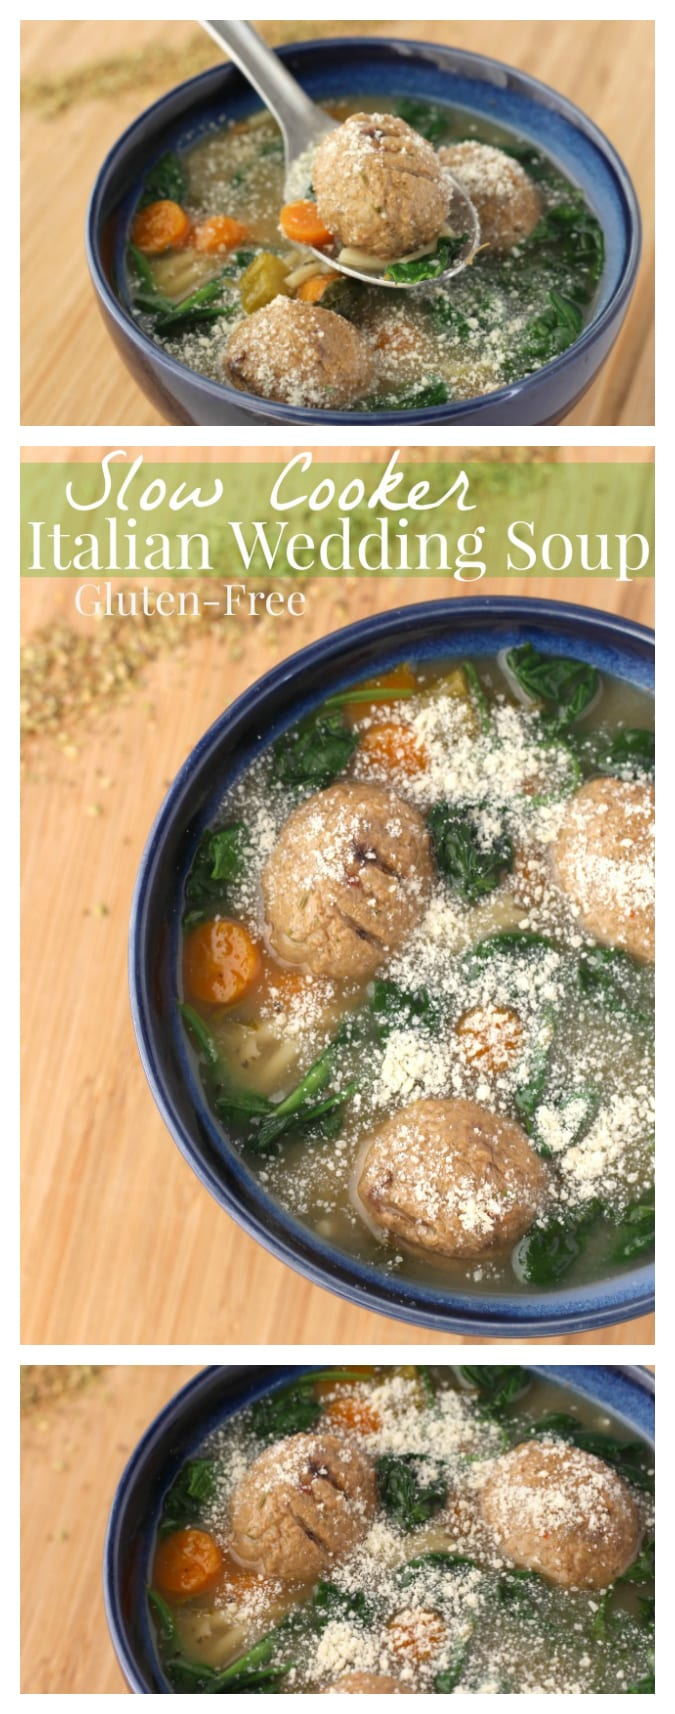 Gluten-Free Slow Cooker Italian Wedding Soup Recipe | A delicious healthier twist on a hearty soup for the family, made in your crock pot, no gluten #Recipe #SlowCooker #Soup #EasyRecipe #GlutenFree #GlutenFreeRecipe